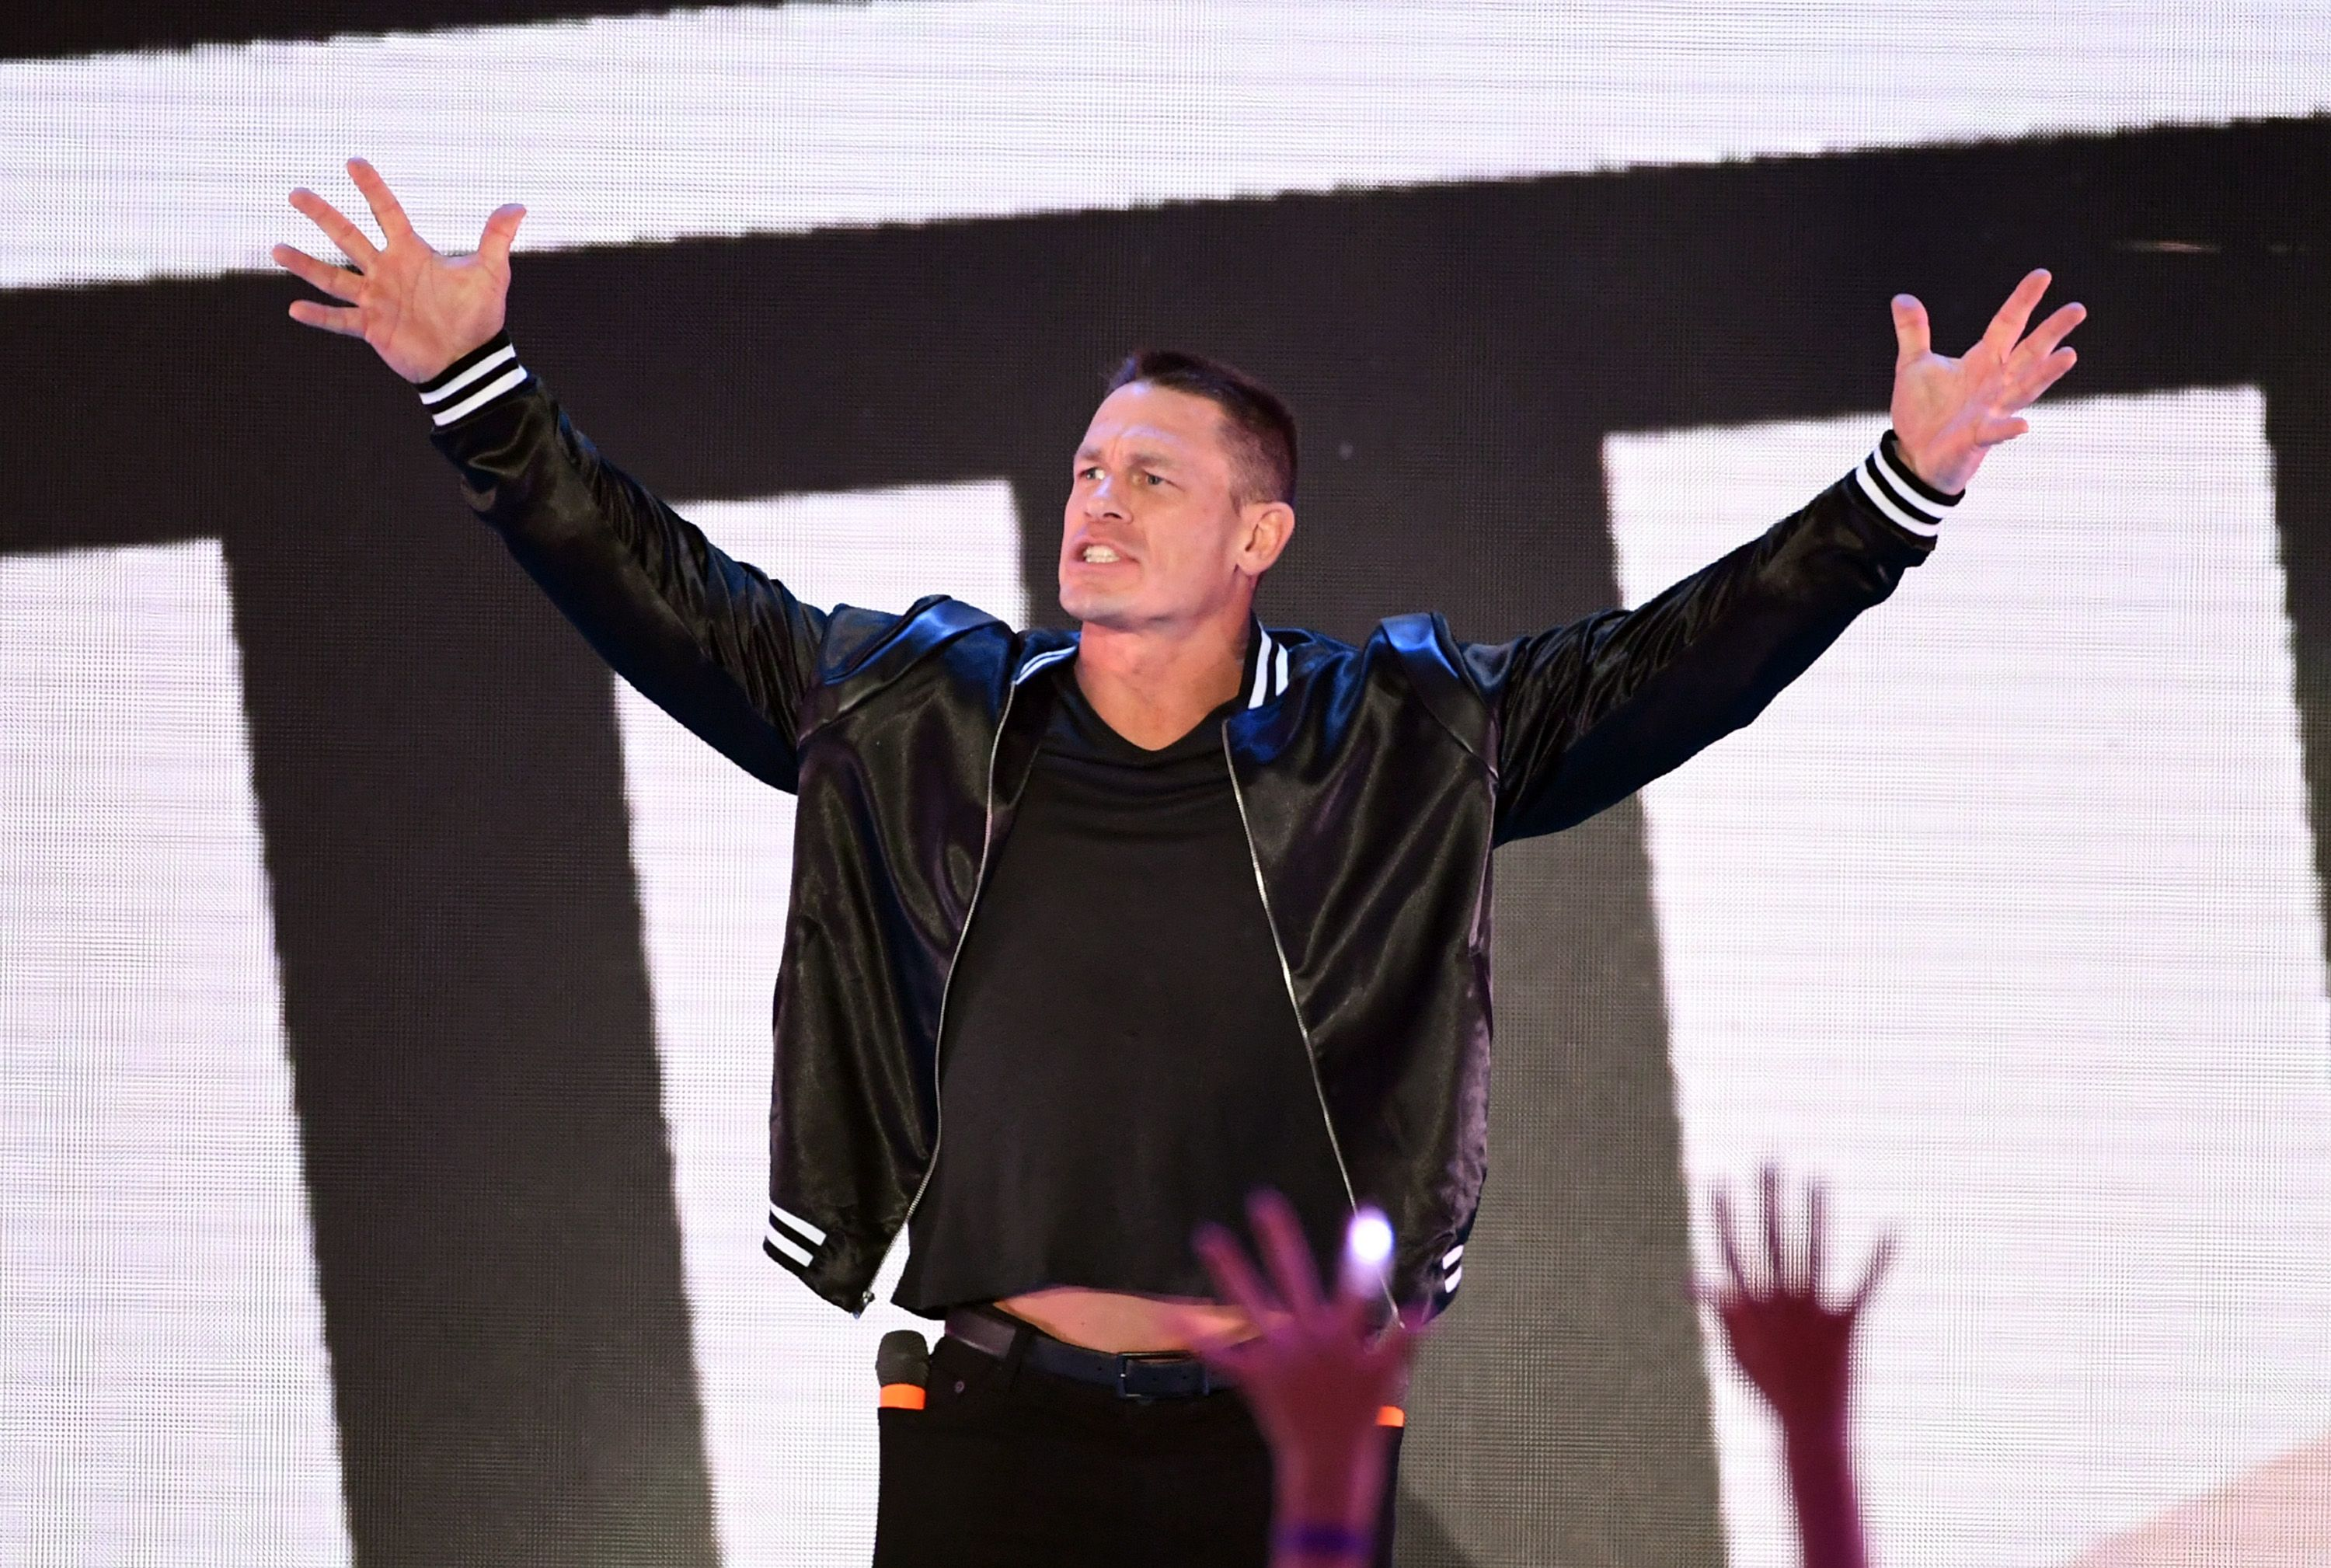 John Cena Believes the Days of the WWE Poster Boy Are Over